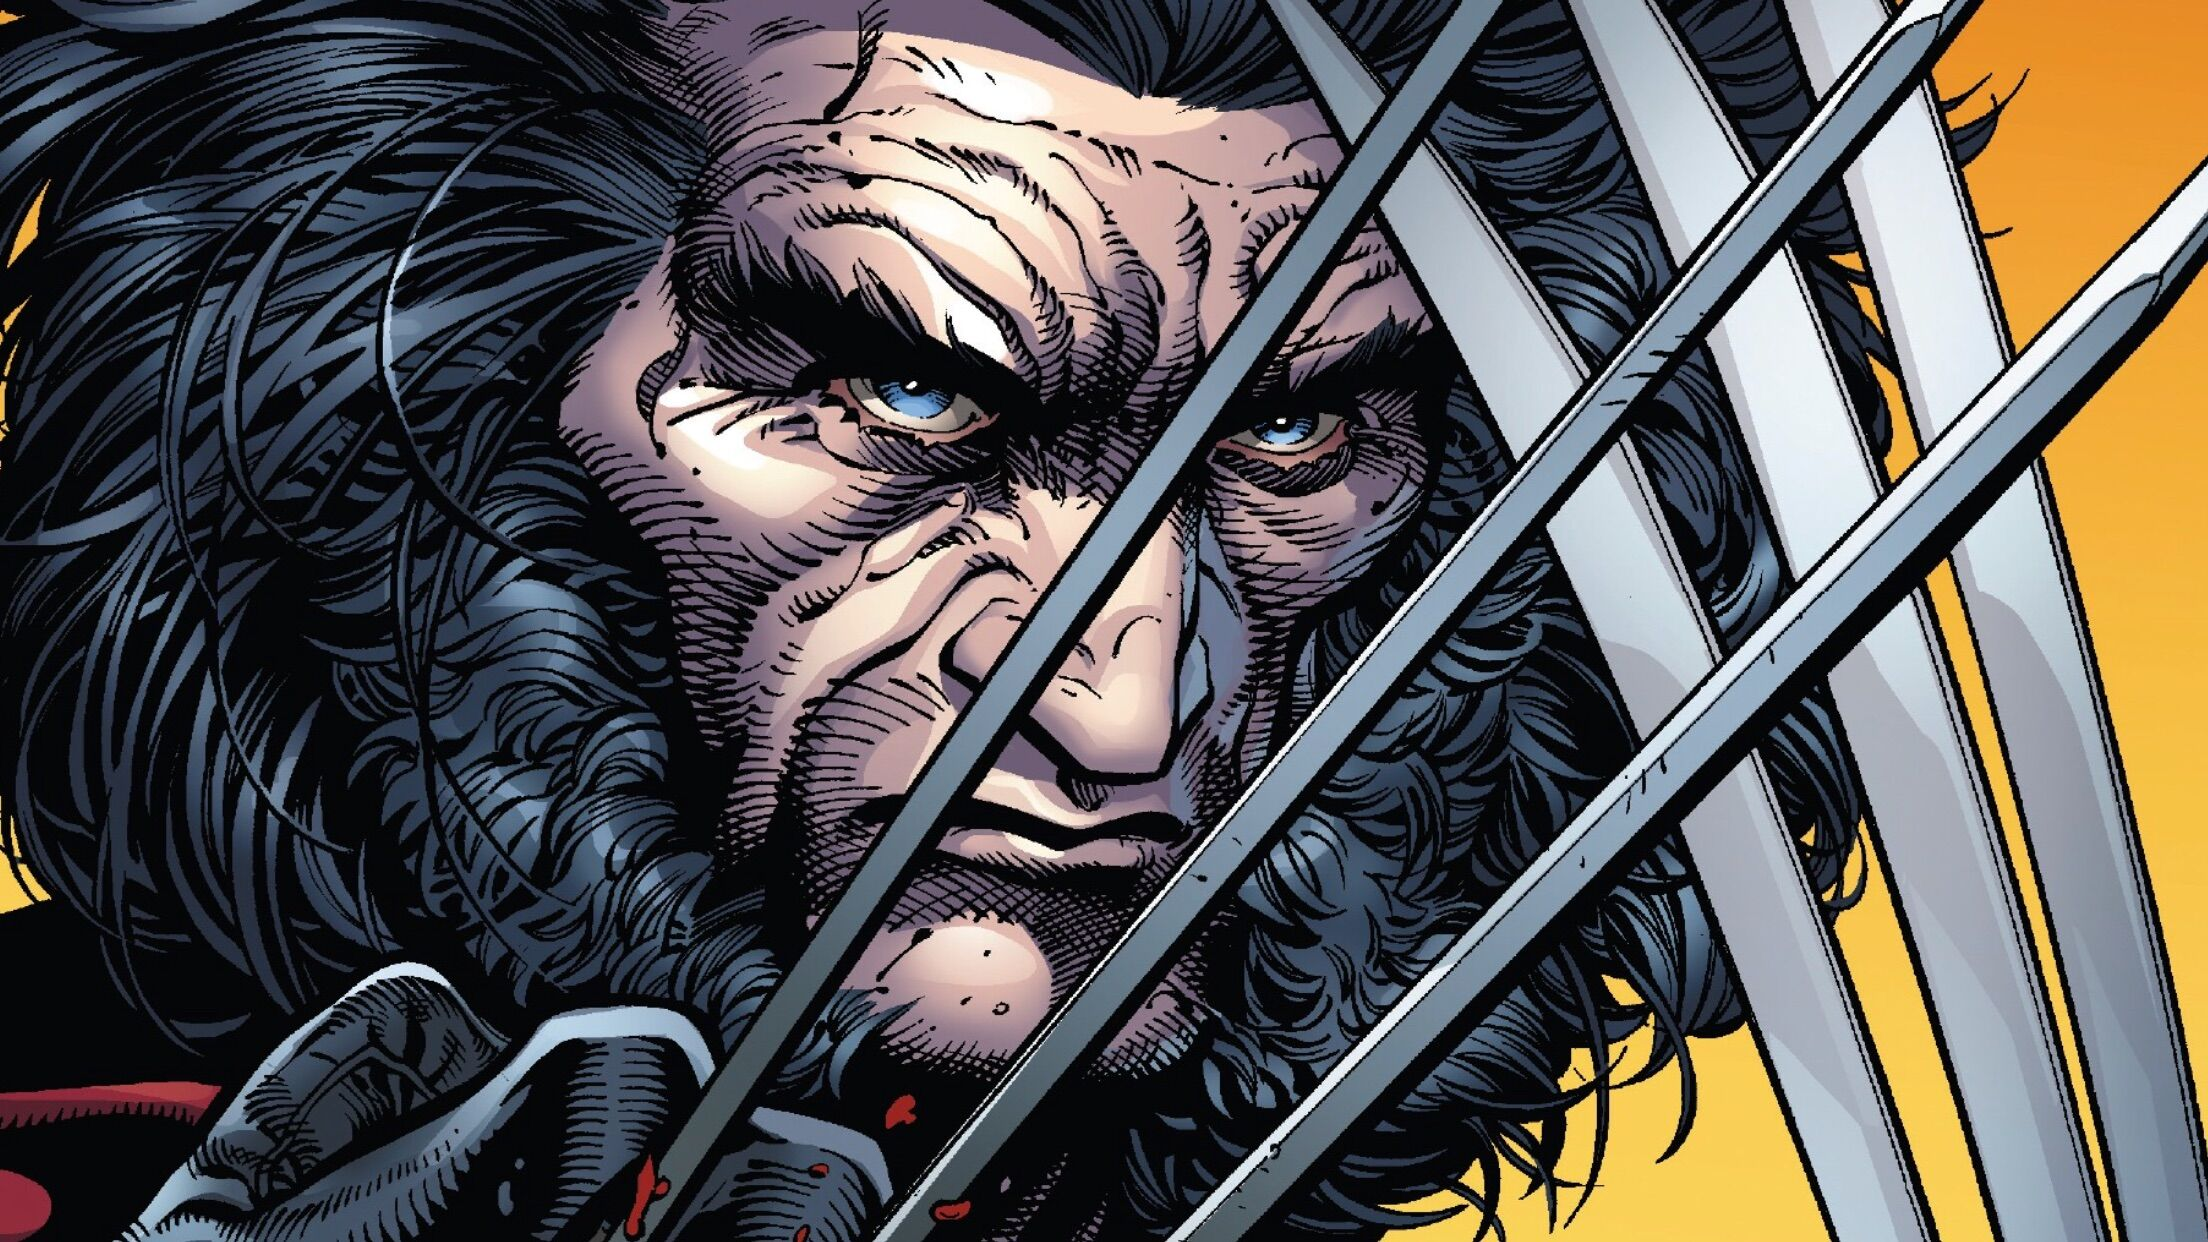 e2644d4667e Return of Wolverine #1 review: Nothing is the same